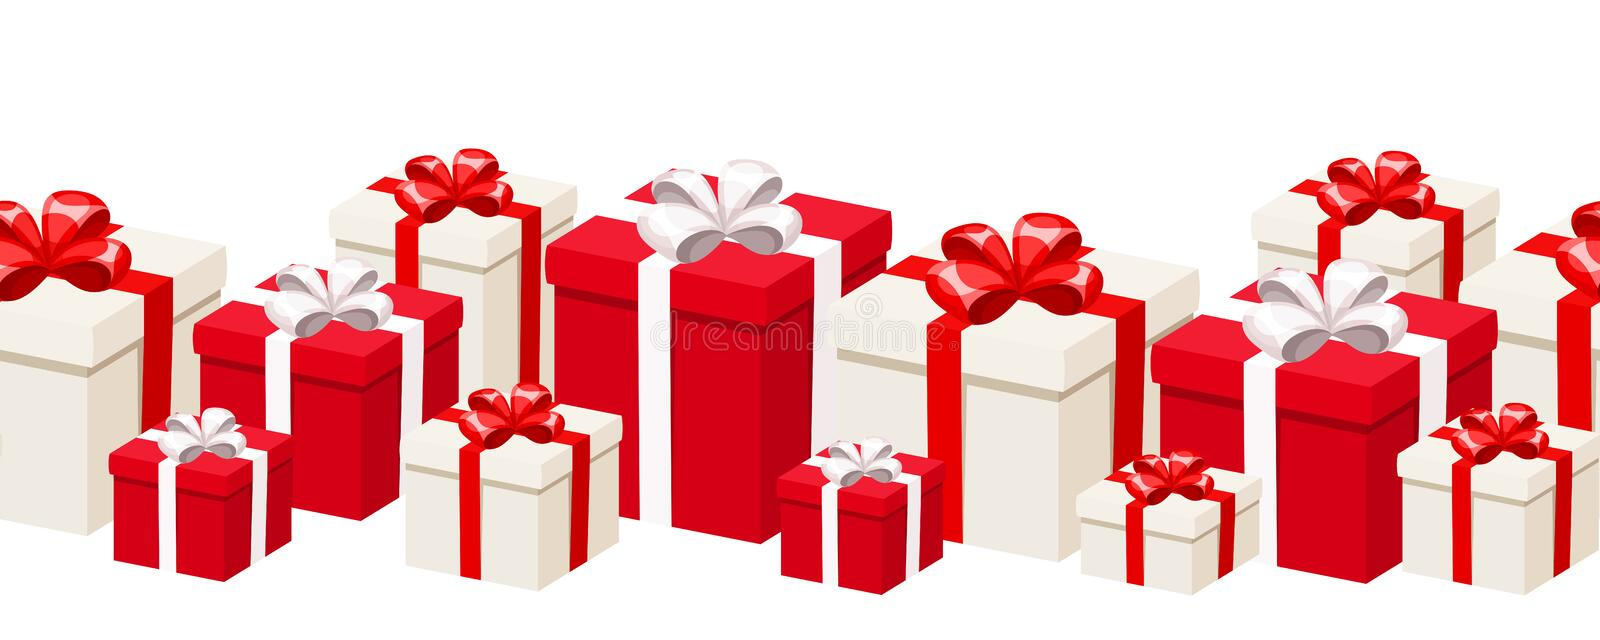 Horizontal seamless background with white and red gift boxes. Vector illustration. vector illustration